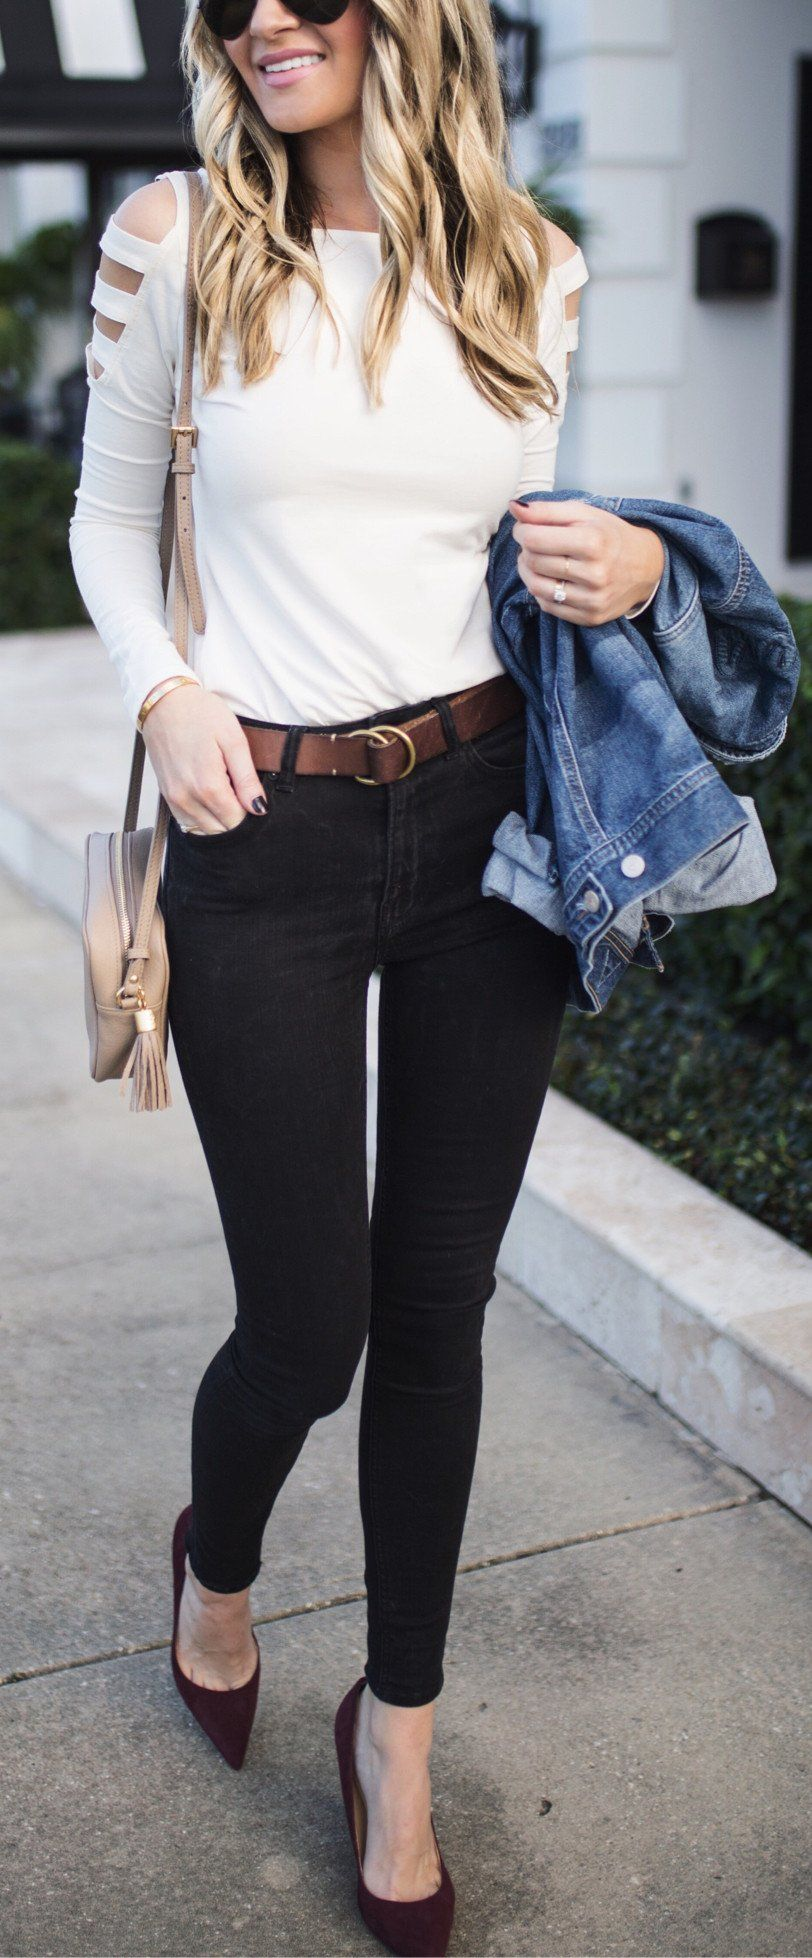 White Top Black Skinny Jeans Black Pumps | Cute outfits